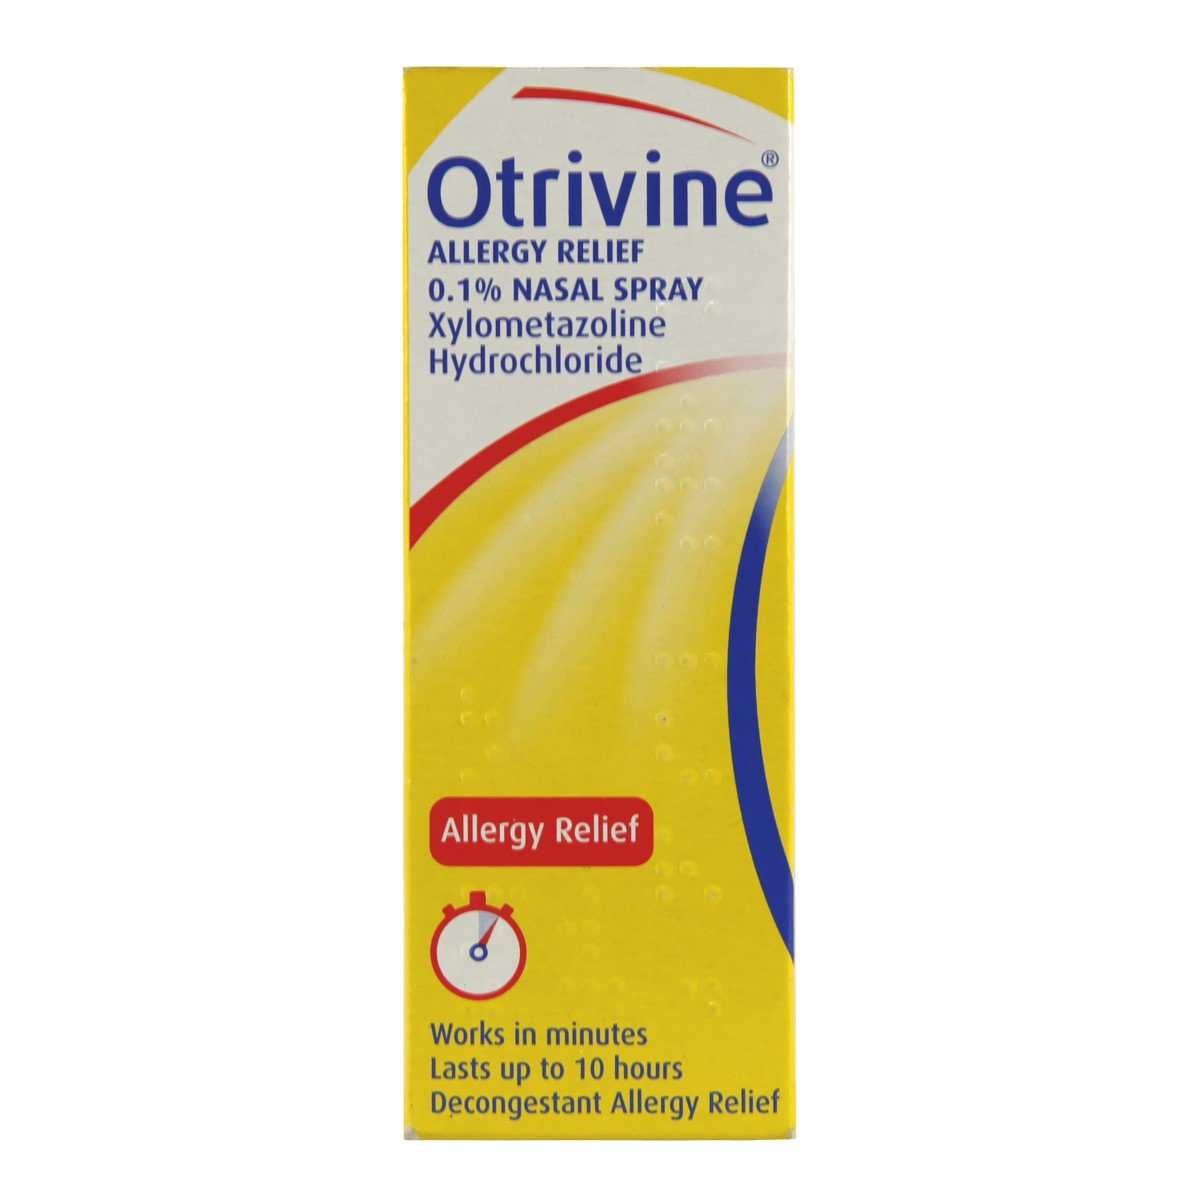 Otrivine Allergy Relief 0.1% Nasal Spray